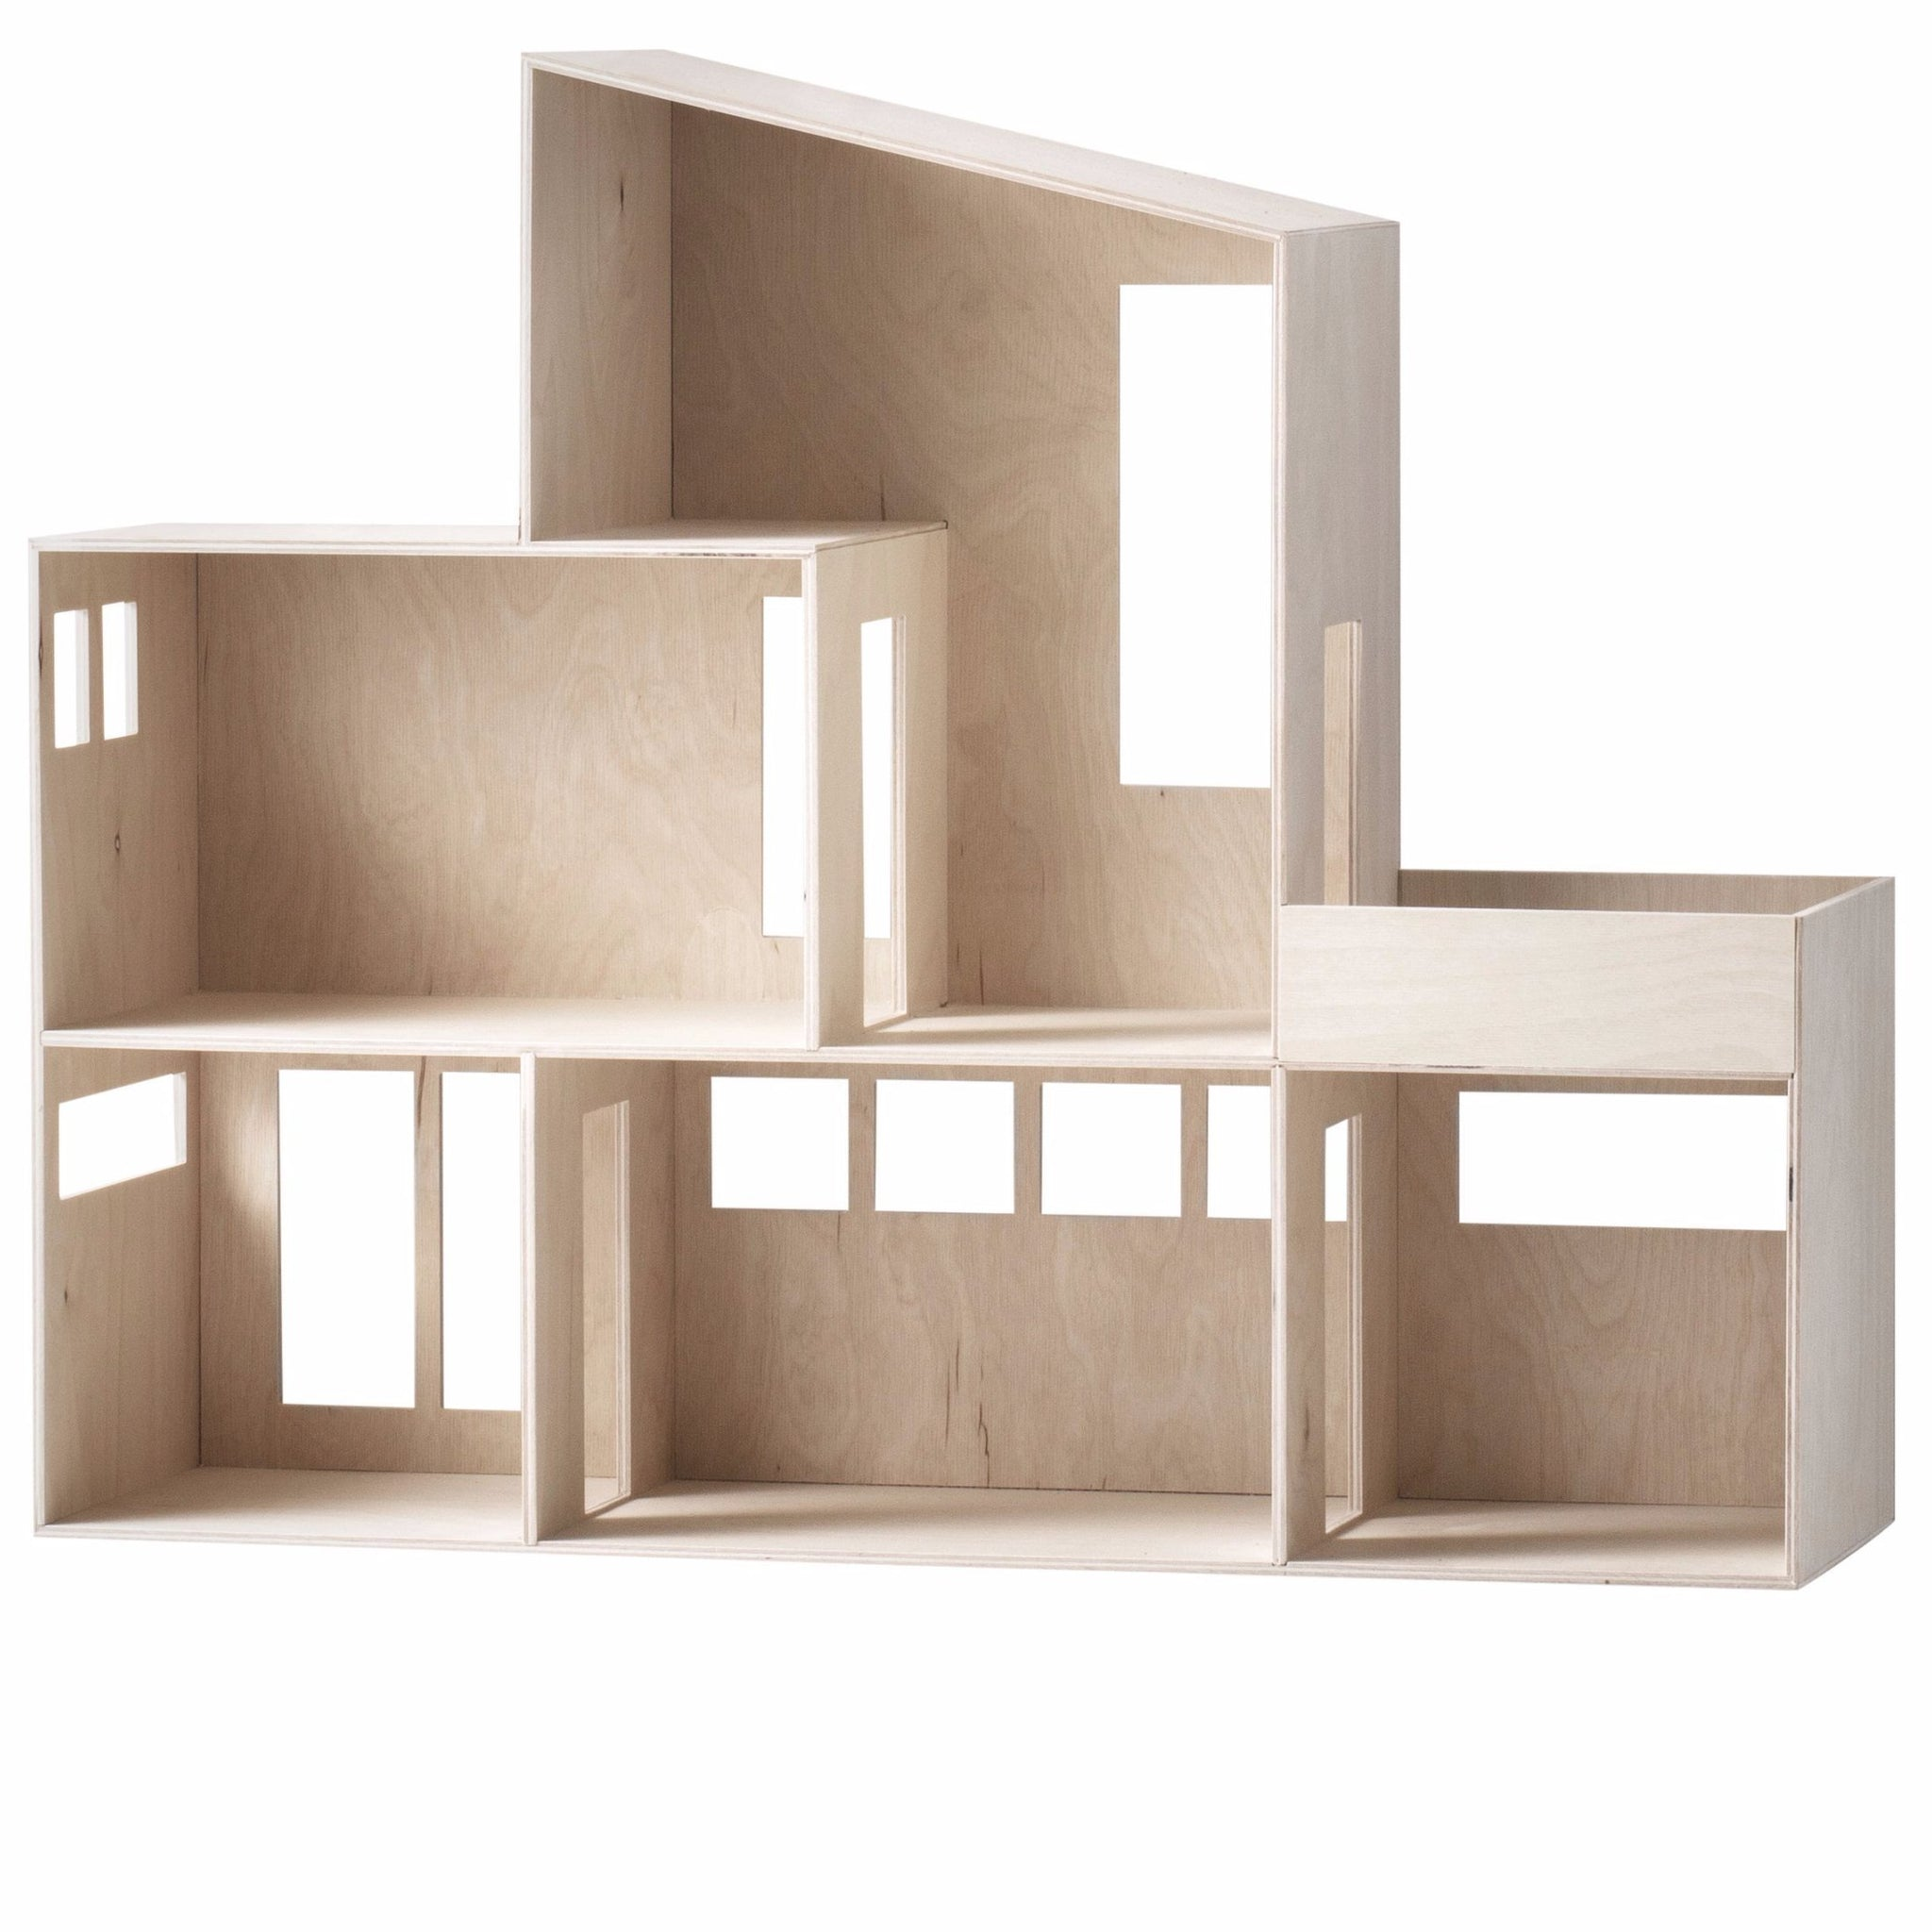 Miniature funkis doll house design by ferm living burke for Funkis sale